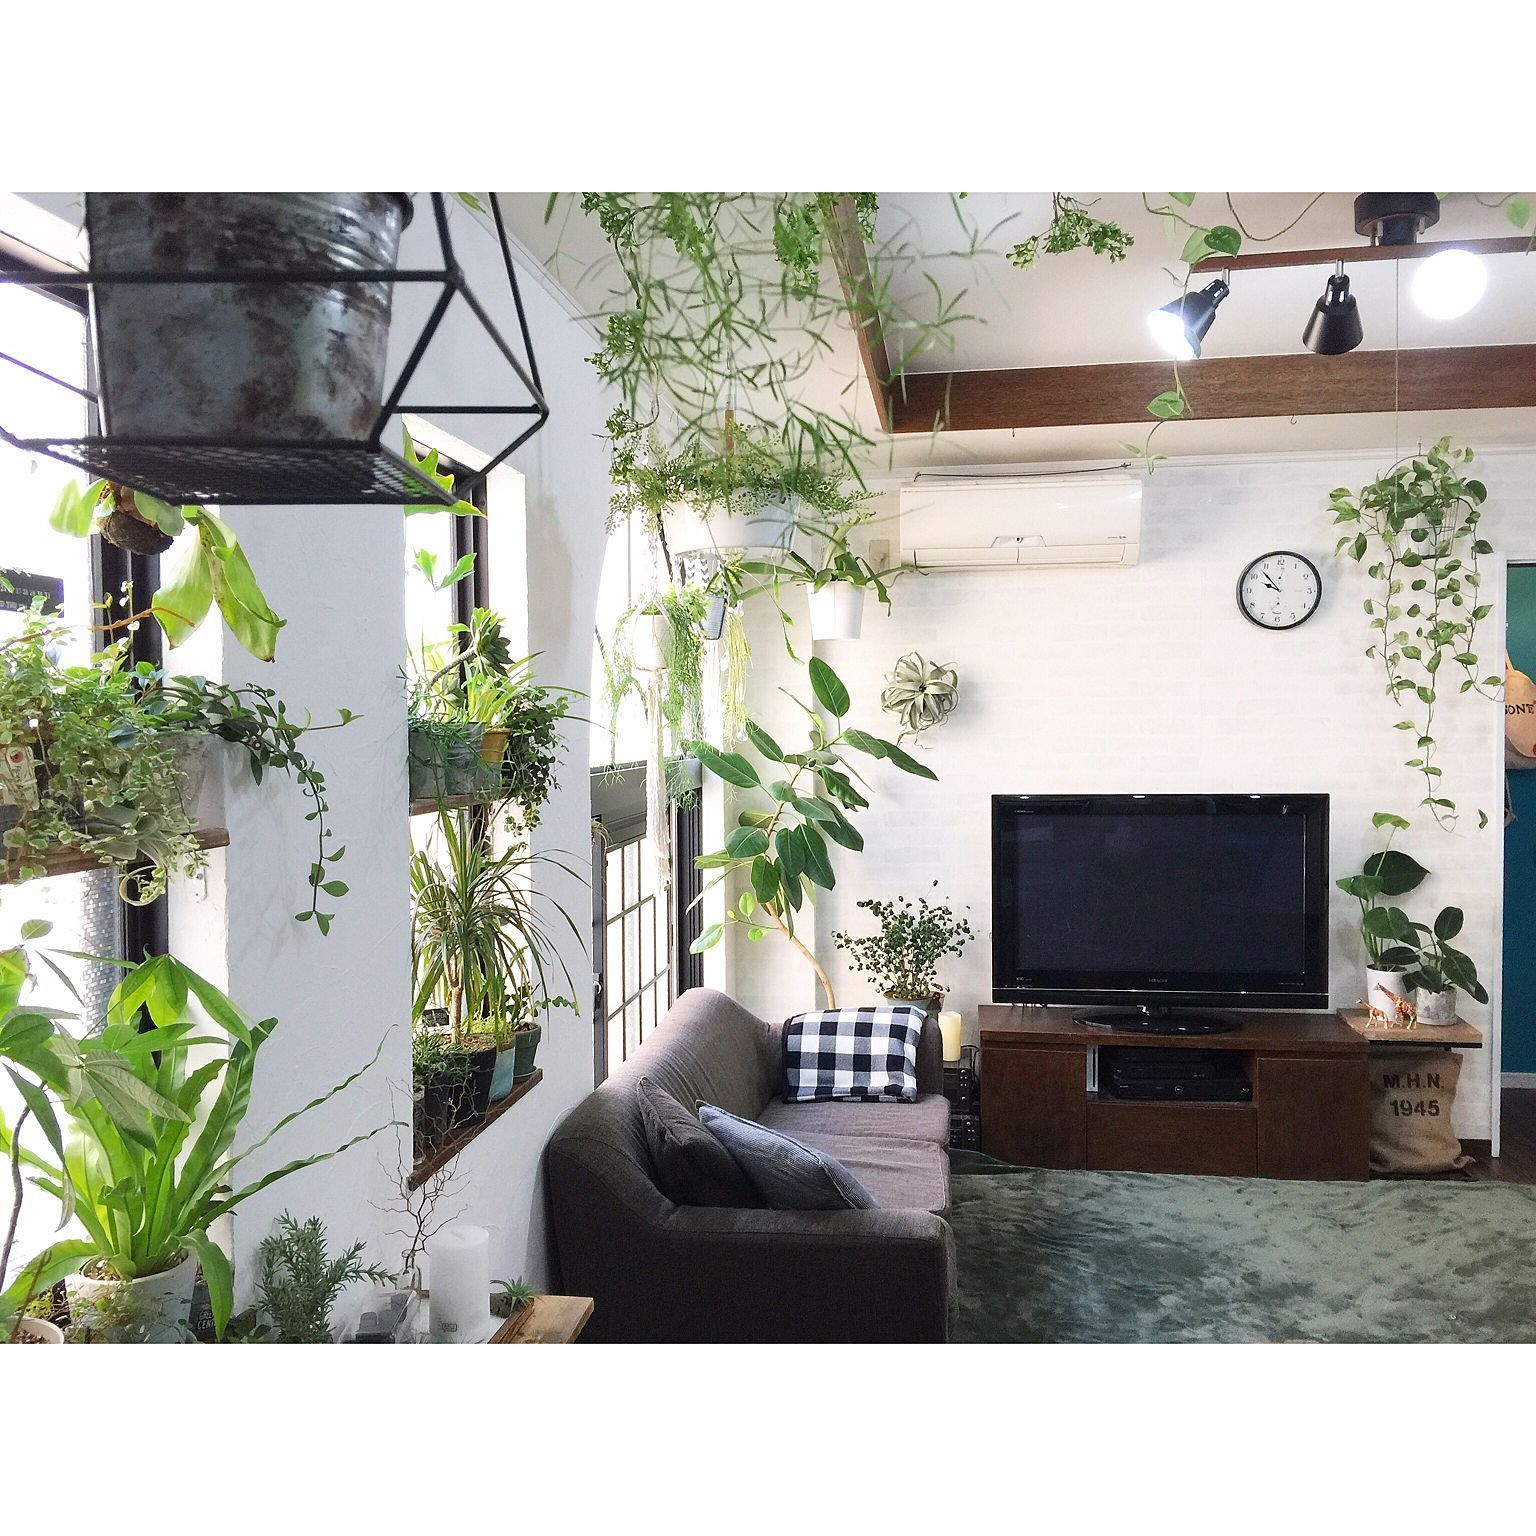 26 Relaxing Green Living Room Ideas: Overview/植物/中古住宅/いなざうるす屋さん/NO GREEN NO LIFE/漆喰DIY...などの